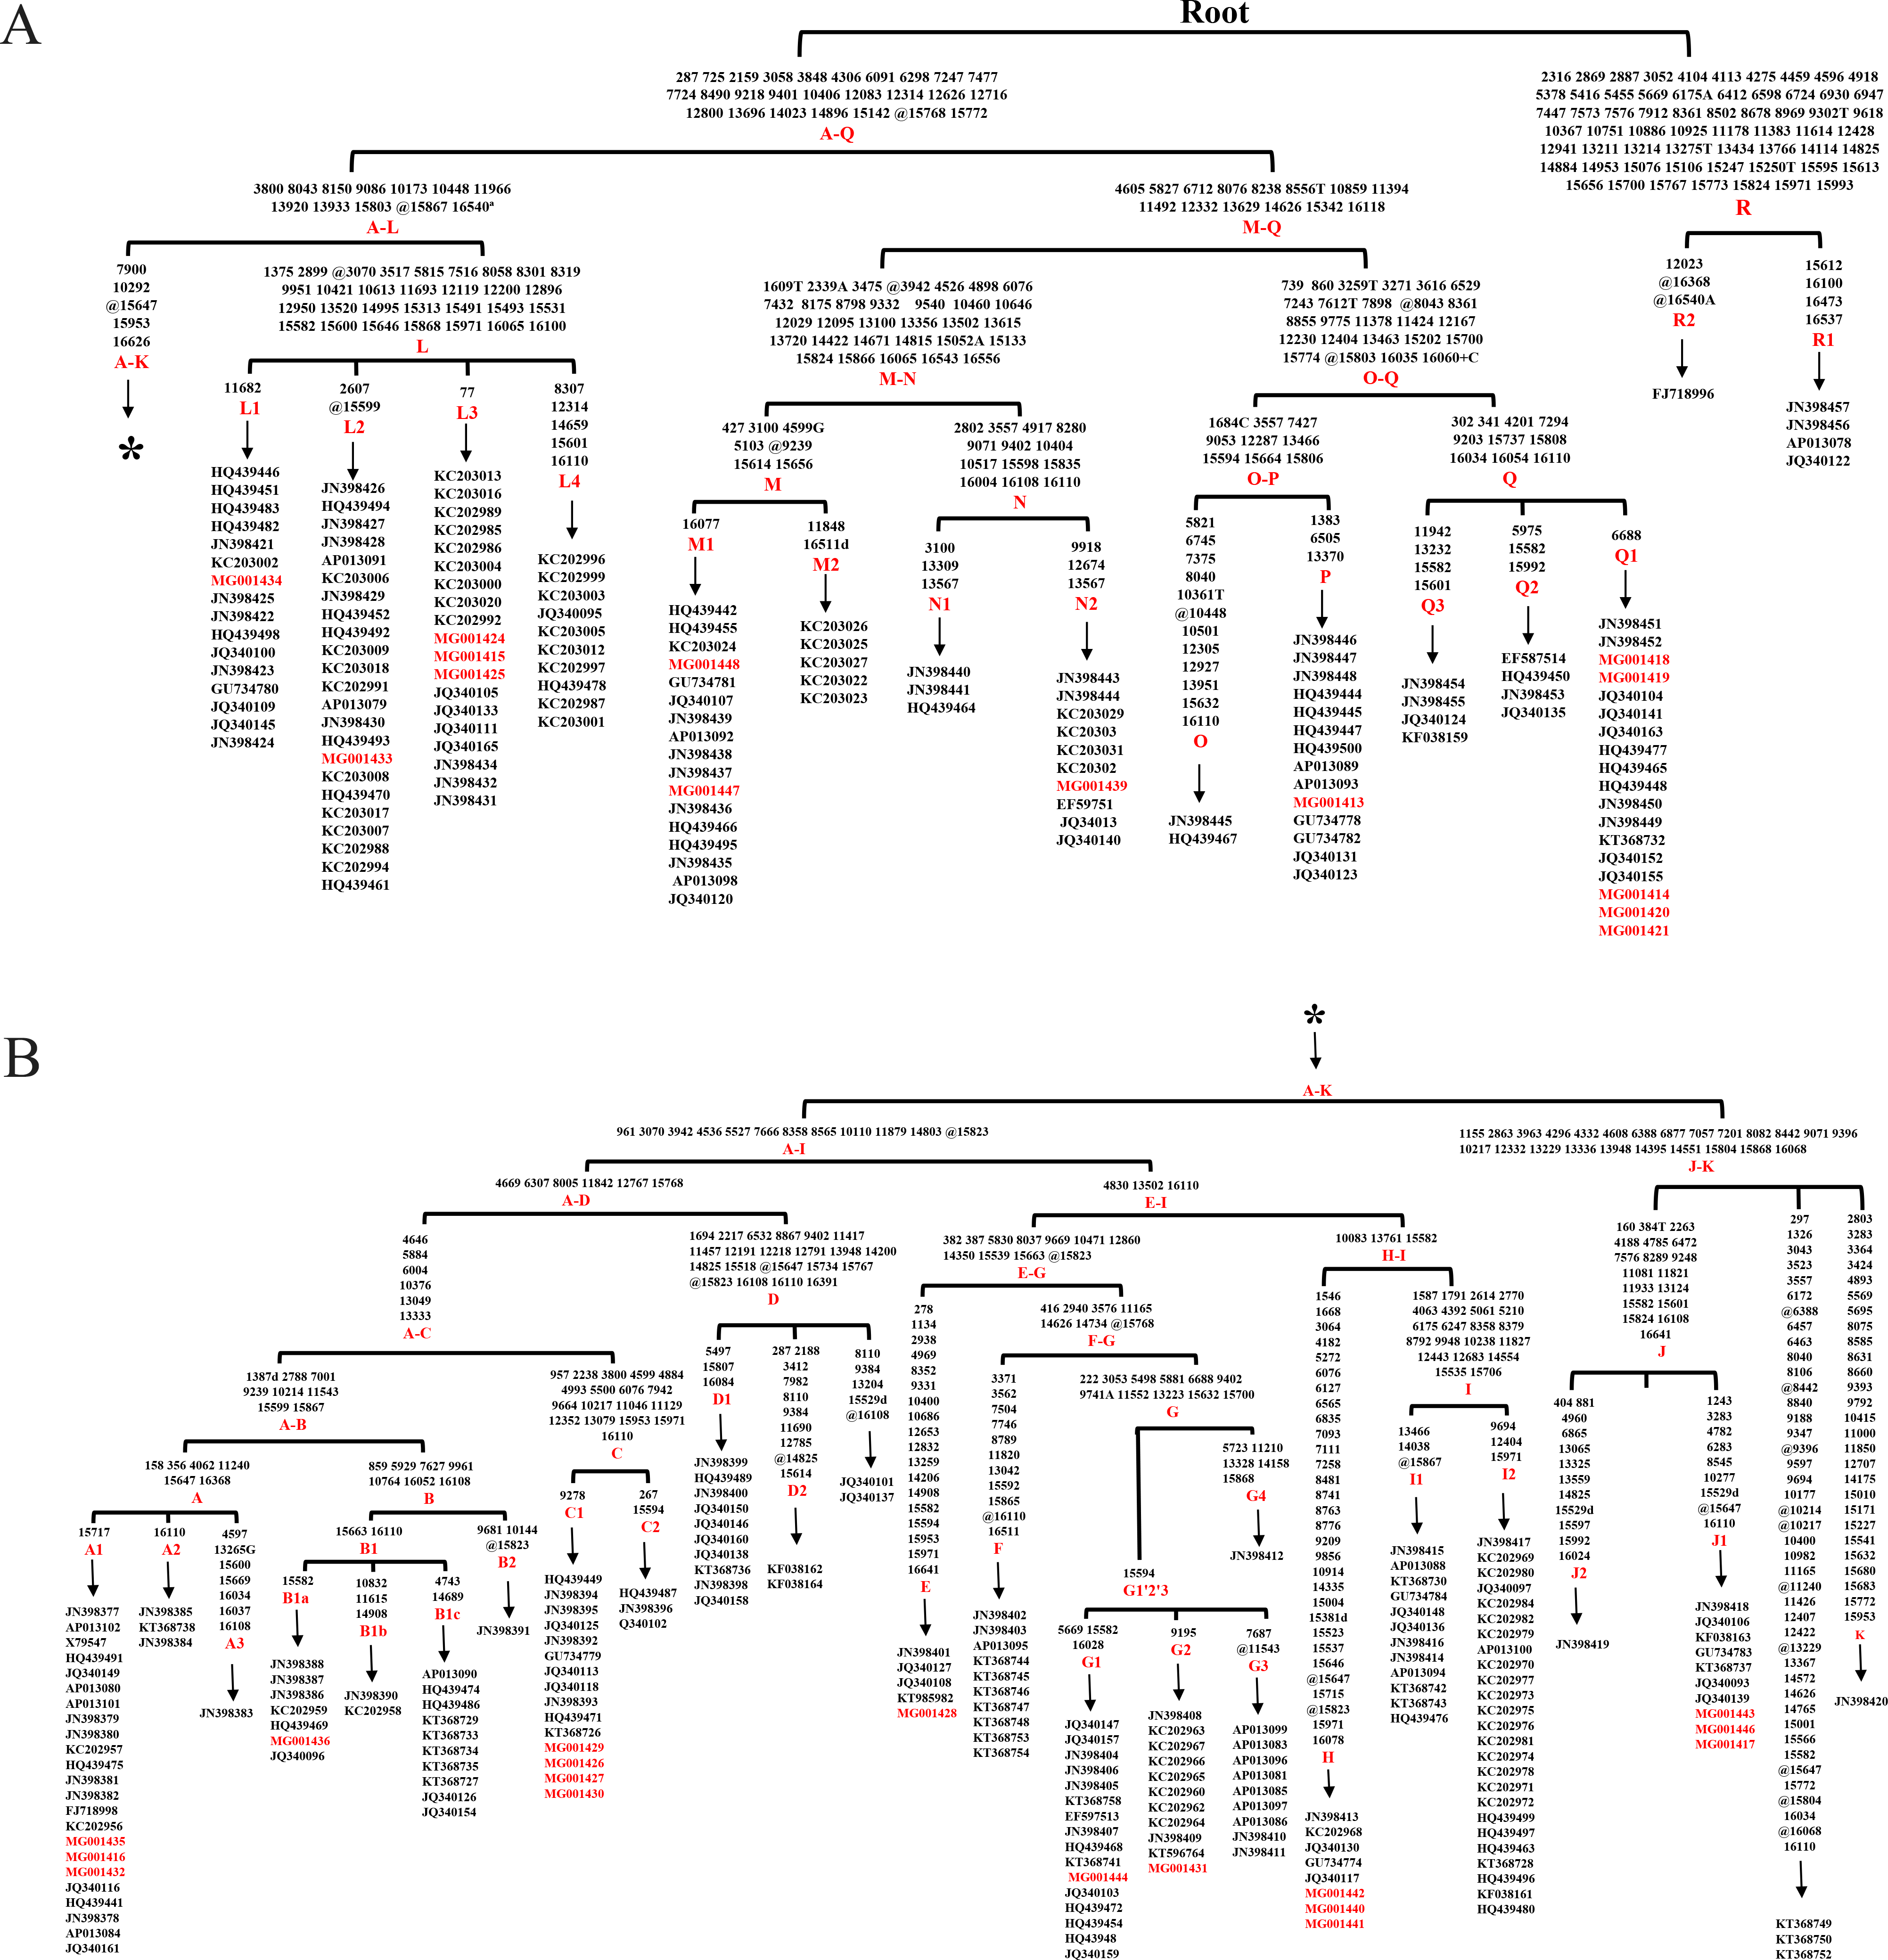 Some maternal lineages of domestic horses may have origins